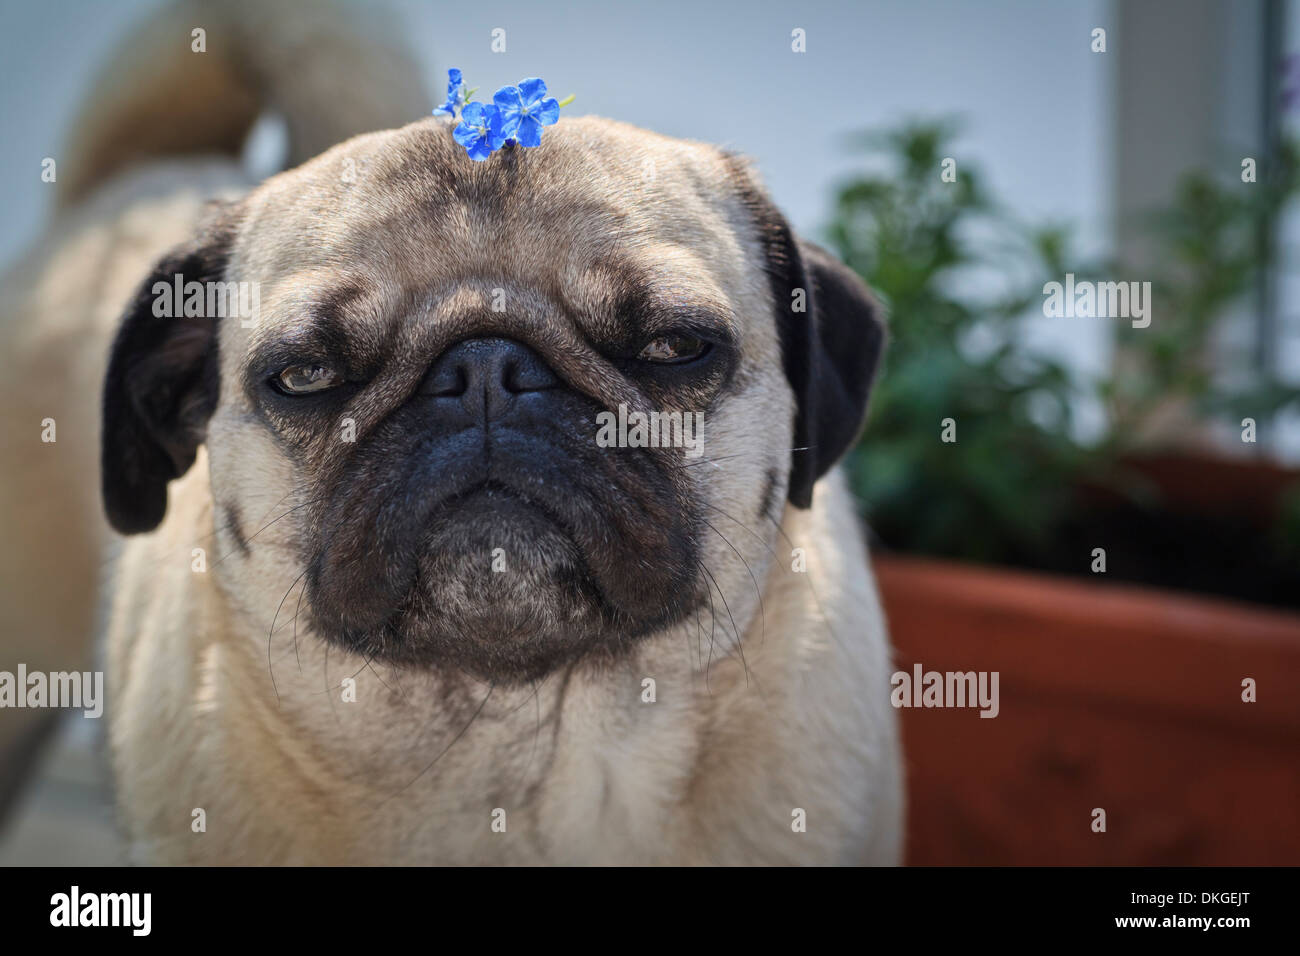 Female pug dog with flower on head - Stock Image